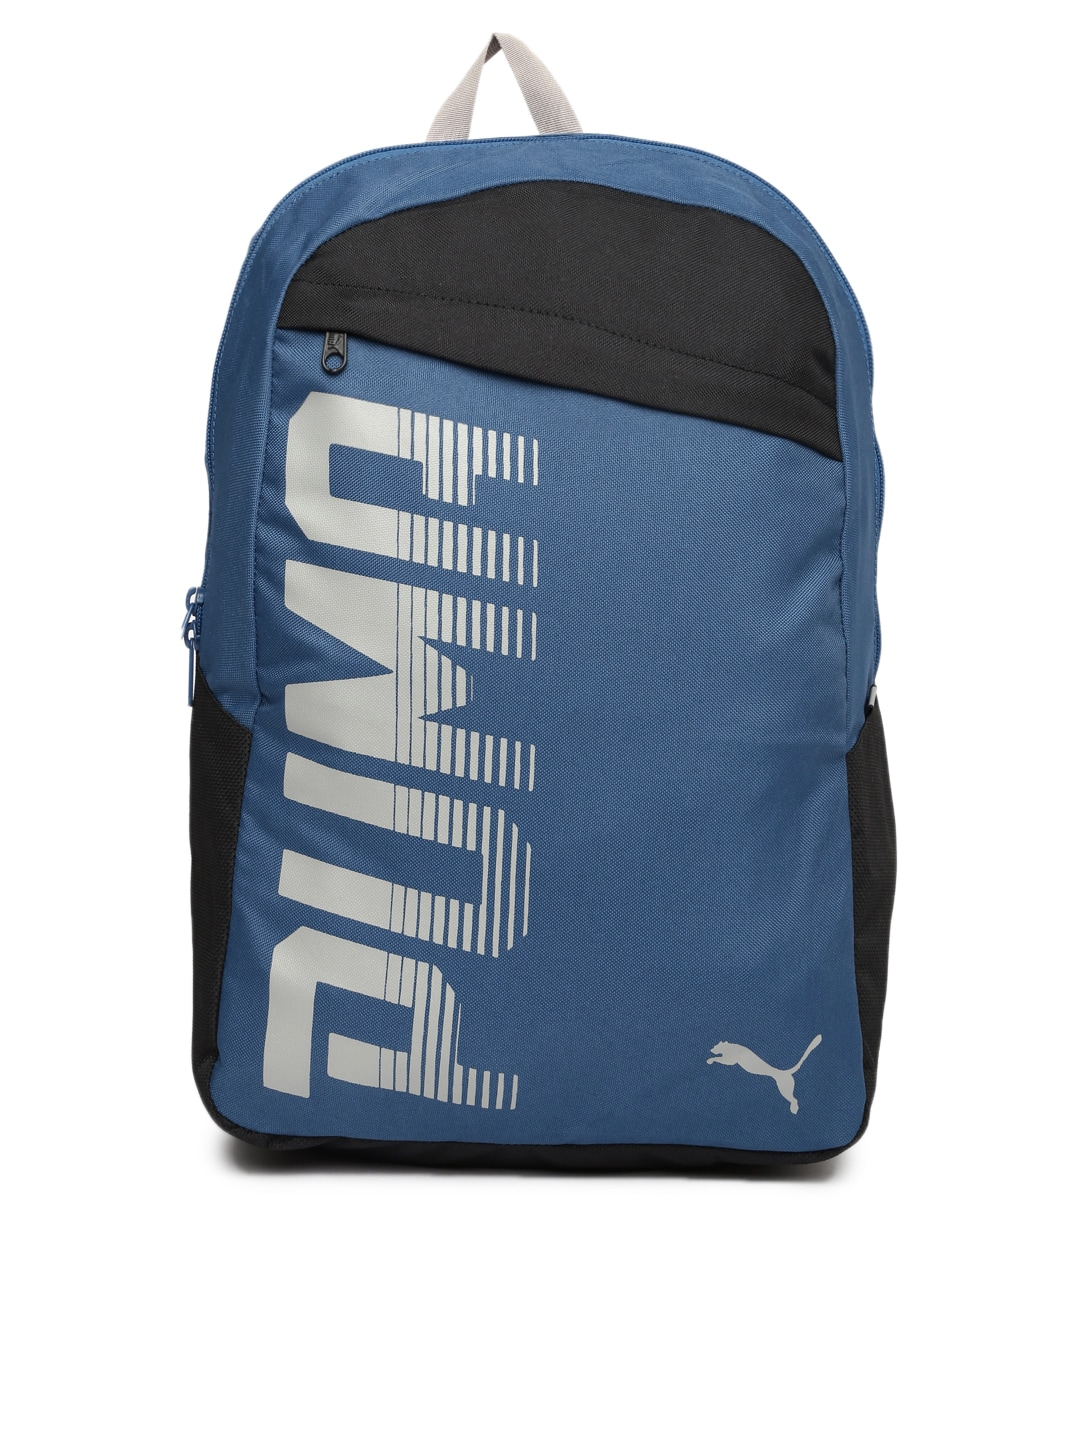 5d255ffac73d Puma Apparels Backpacks Handbags - Buy Puma Apparels Backpacks Handbags  online in India